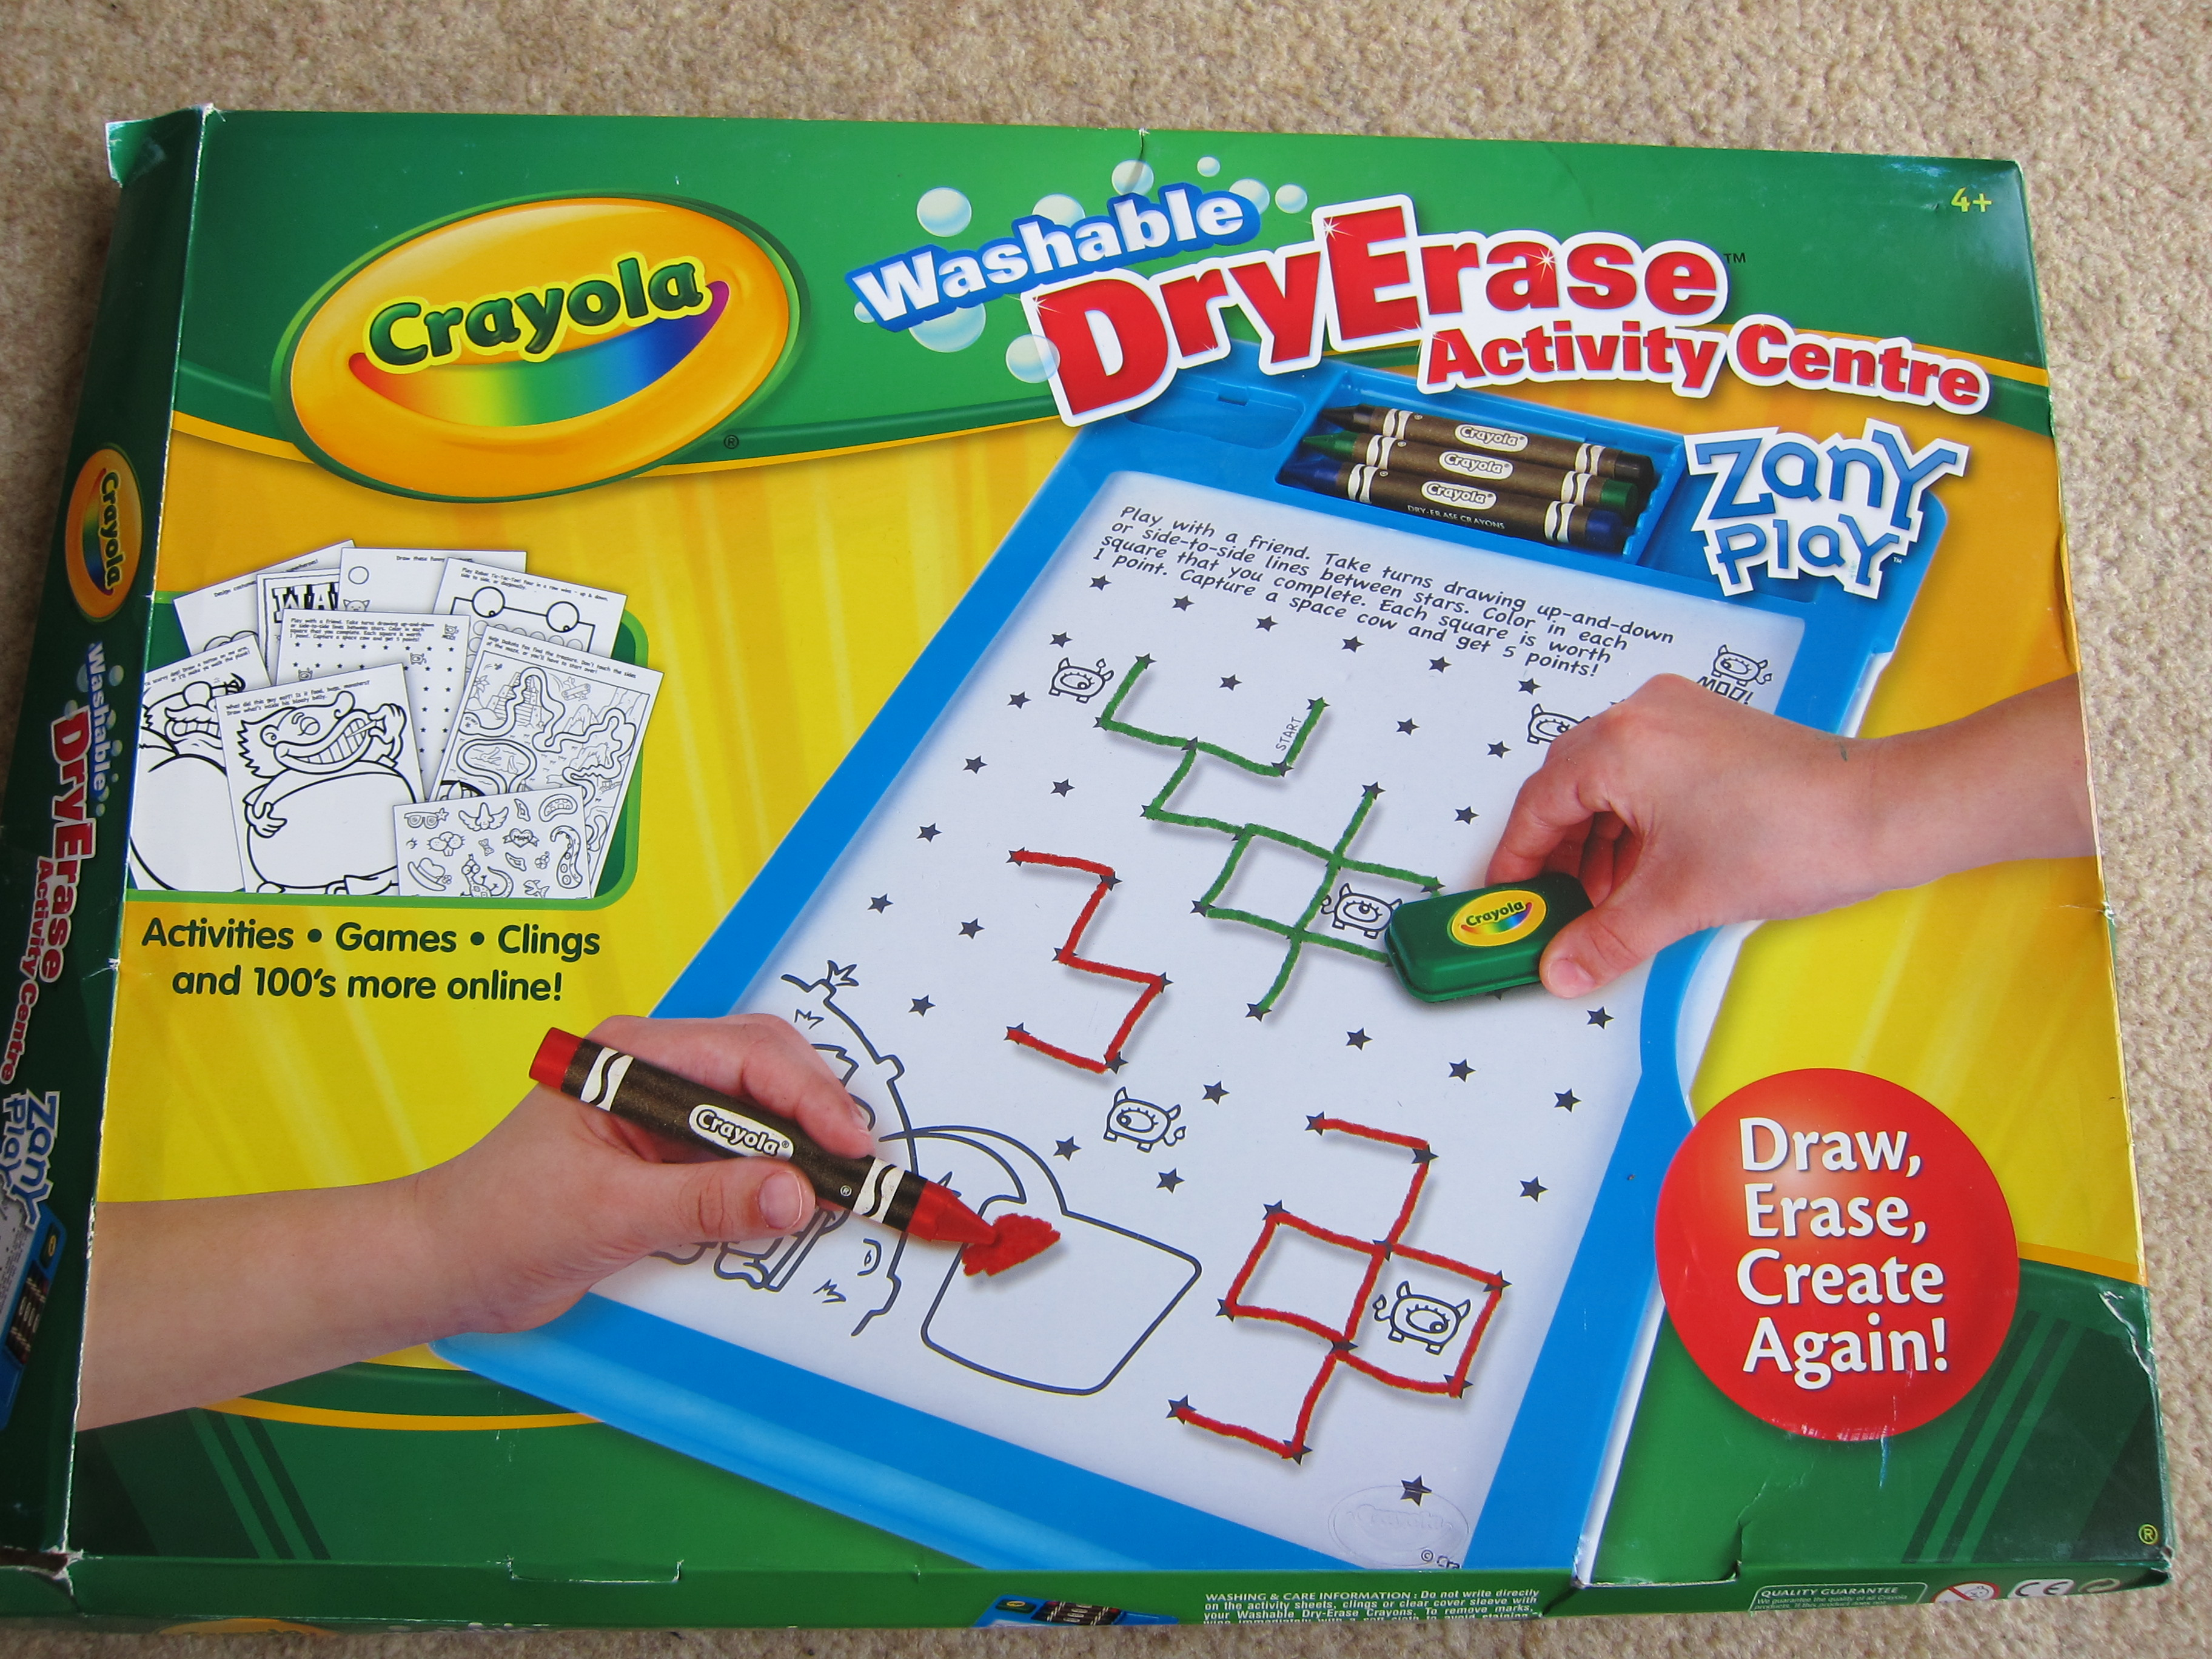 Crayola Dry Erase Activity Centre Review | Blog by Baby